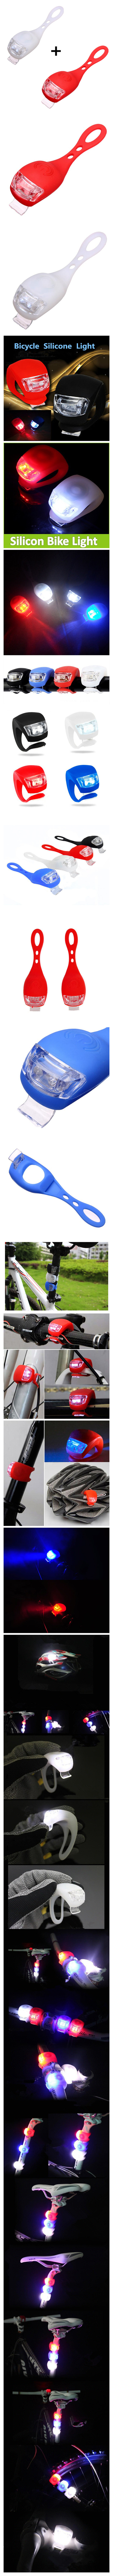 White&Red Bicycle Bike Light Waterproof Silicone LED Flashlight